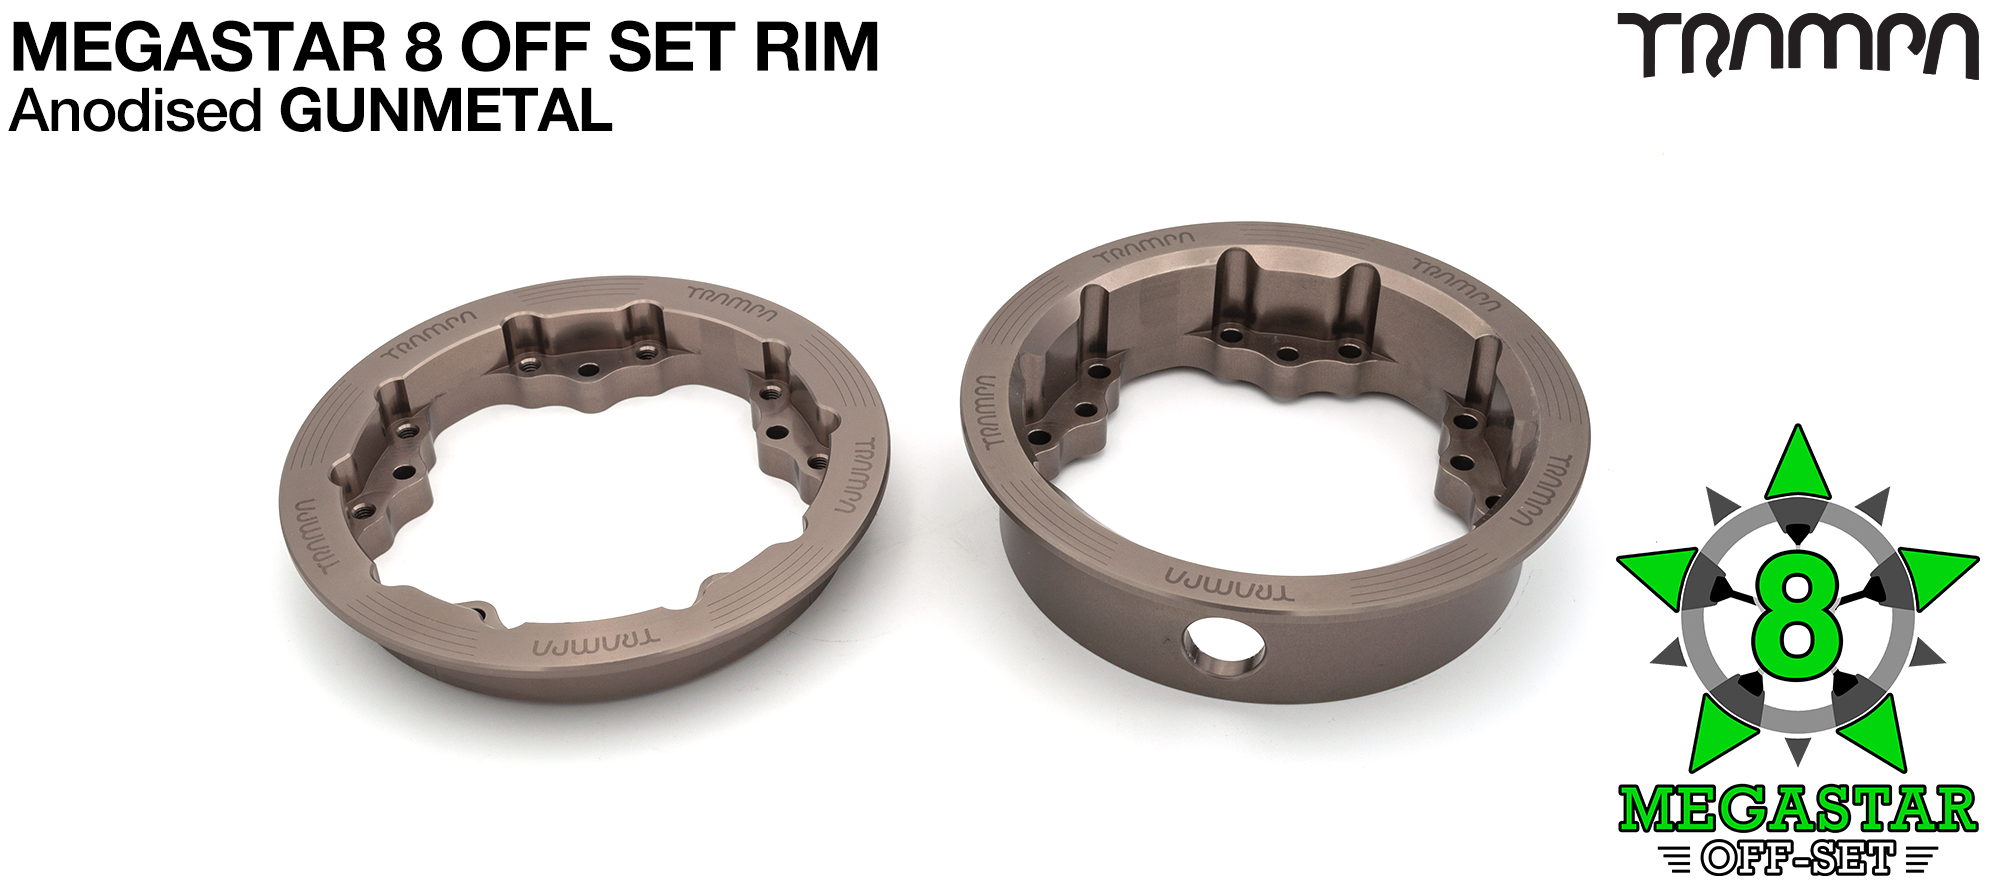 CENTER-SET 8 inch MEGASTAR Rims - GUNMETAL